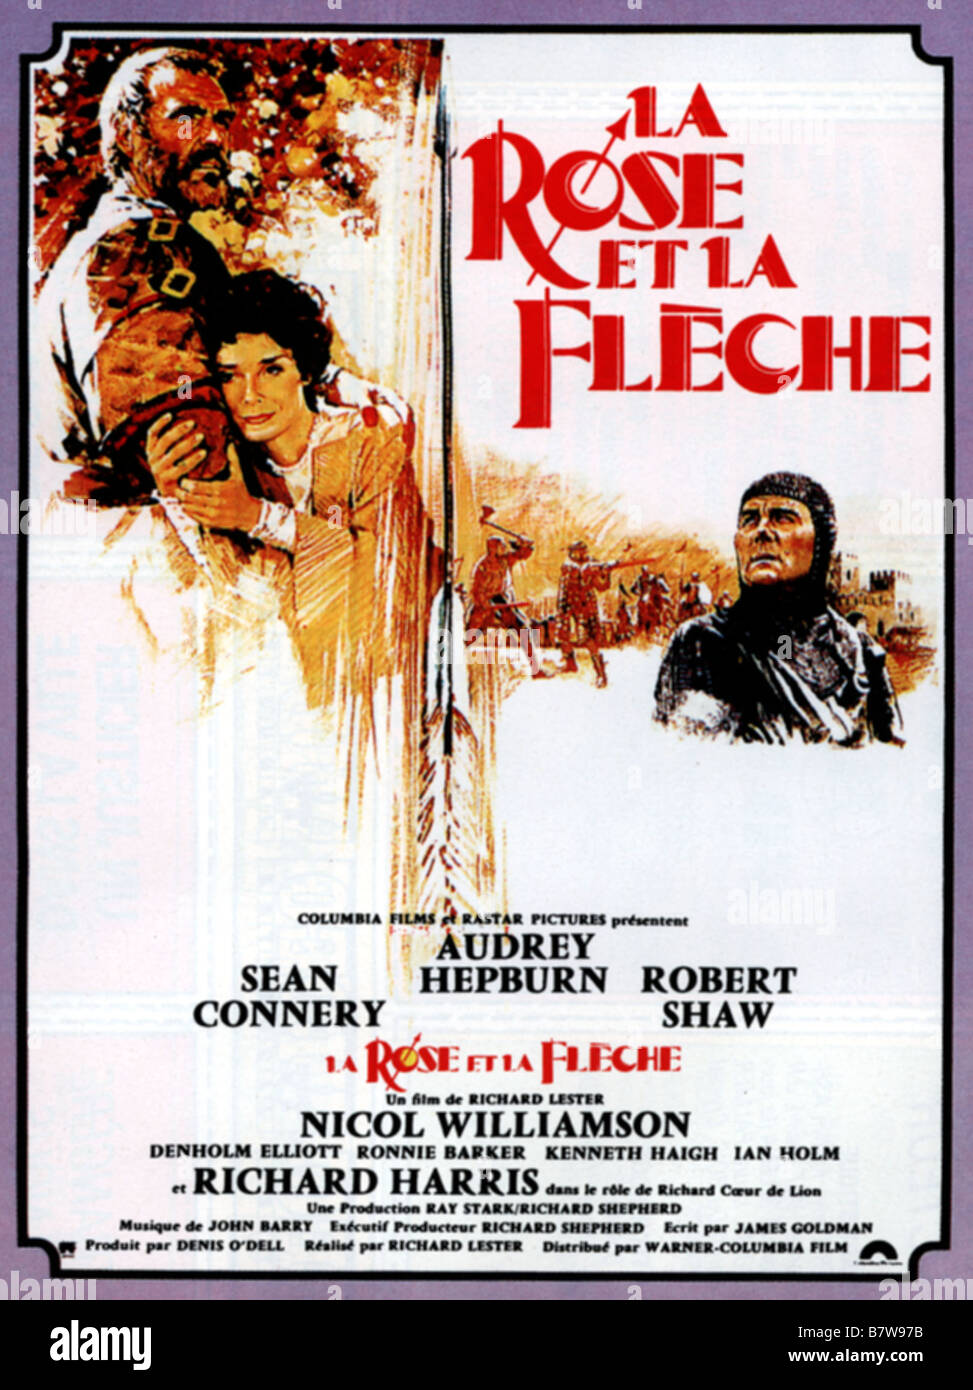 La rose et la fl che robin and marian ann e 1976 usa affiche poster stock photo royalty free for Poster et affiche